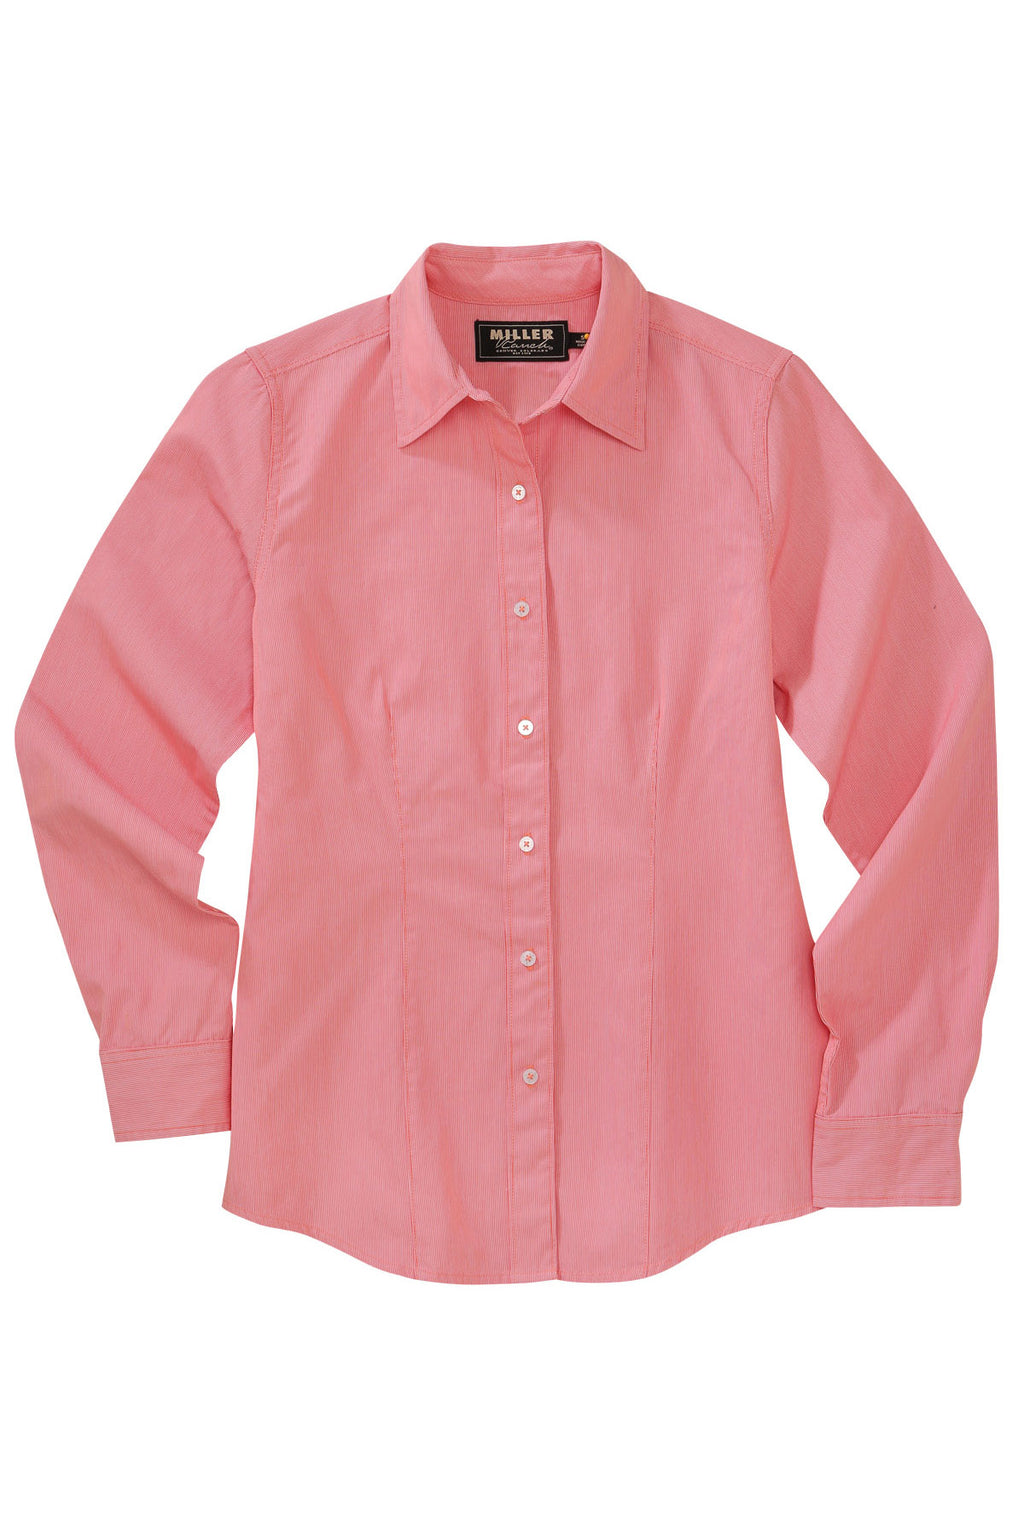 MILLER RANCH Women's Coral Pinpoint Button-Down Western Shirt